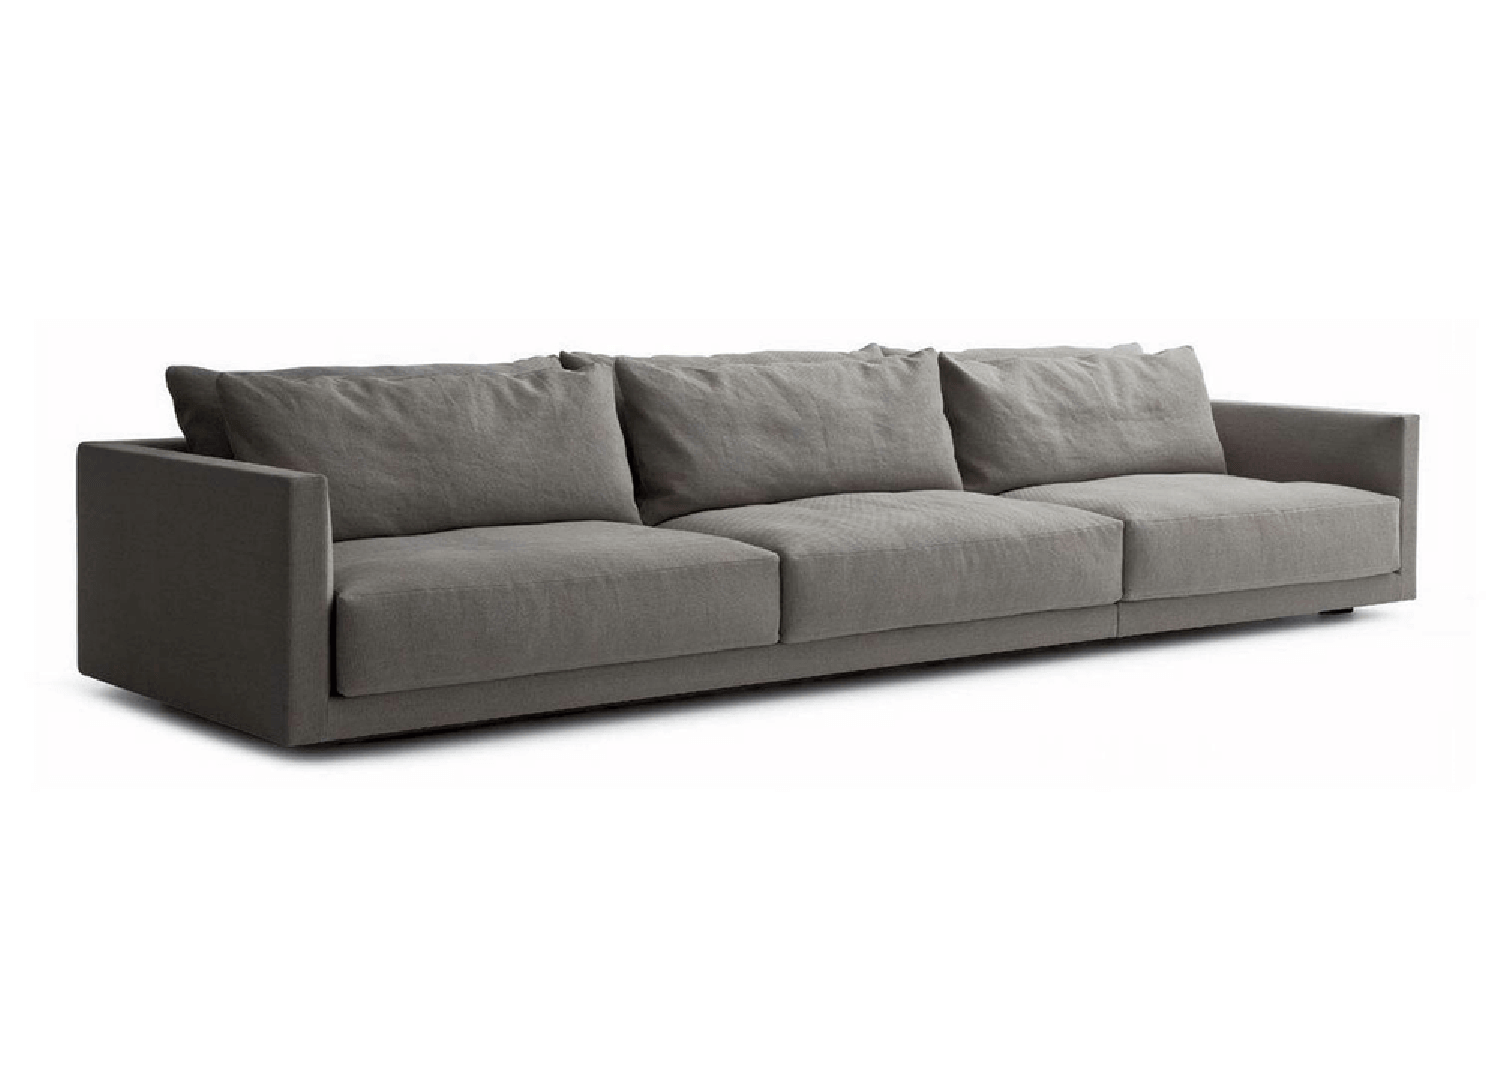 est living design directory bristol sofa poliform.01